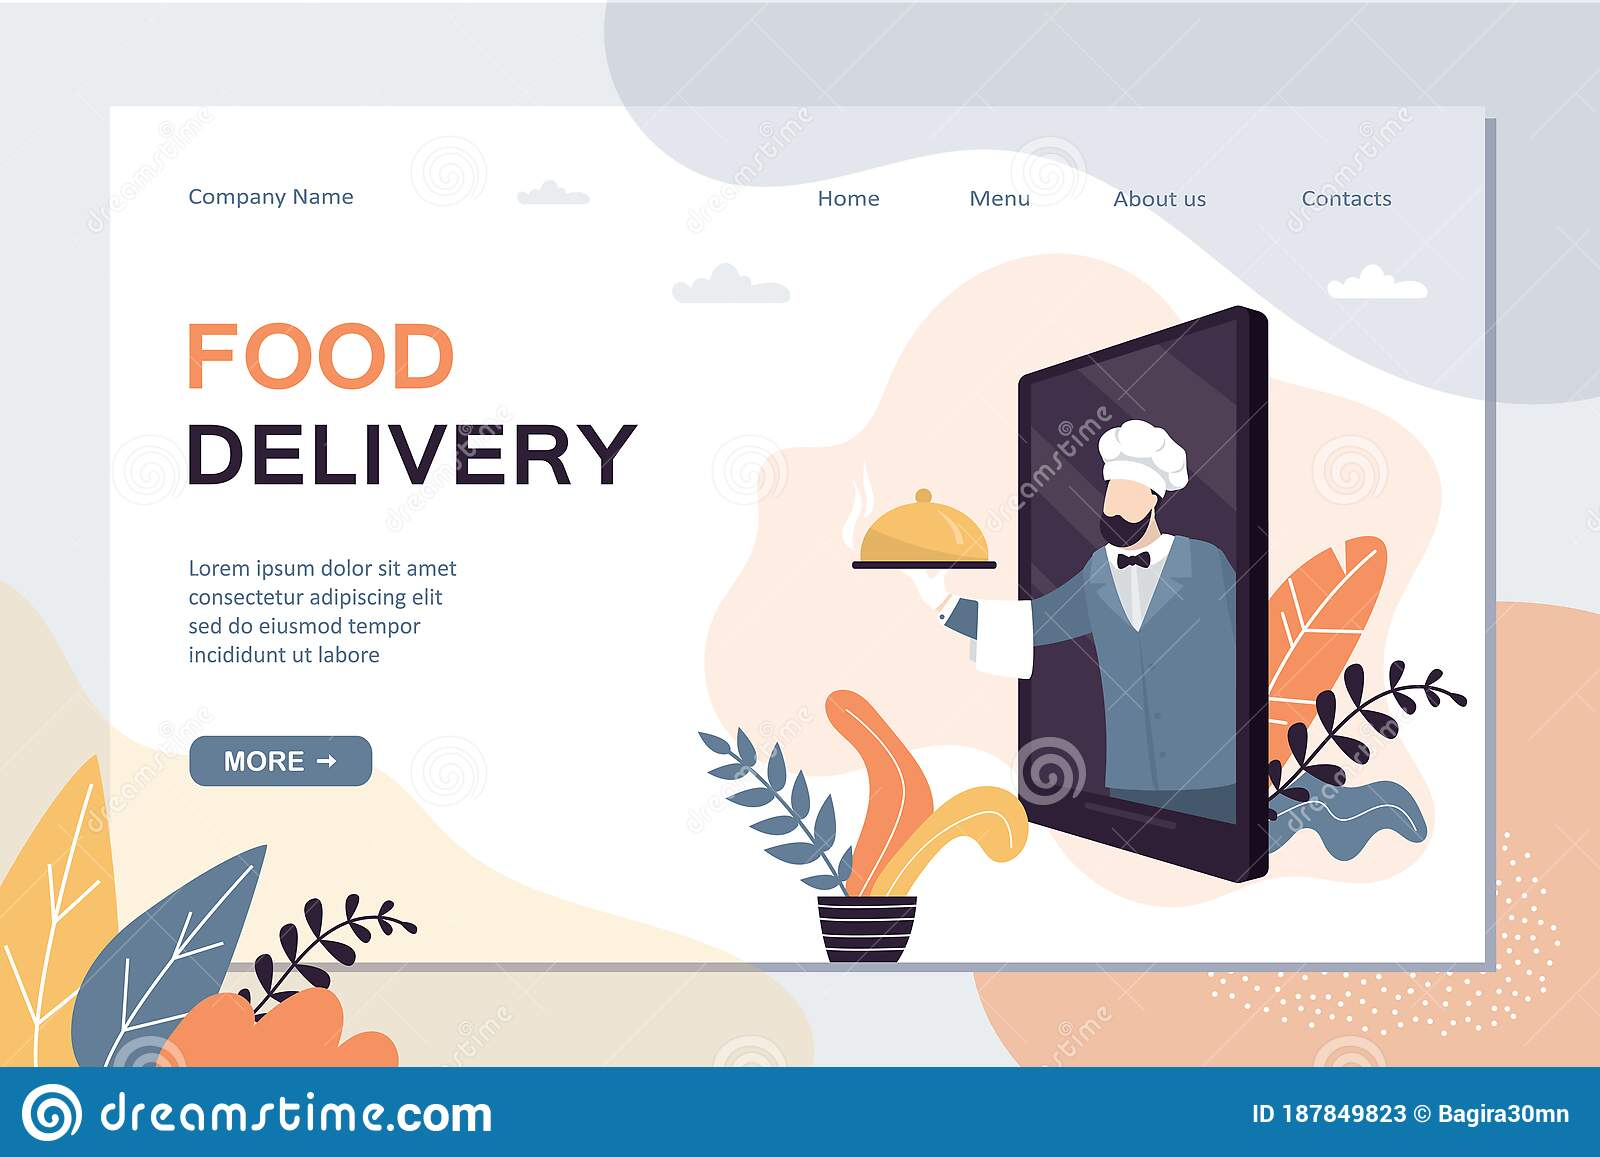 Food Delivery Landing Page Template Order And Delivery Of Food From Restaurant Or Cafe Stock Vector Illustration Of Eating Order 187849823